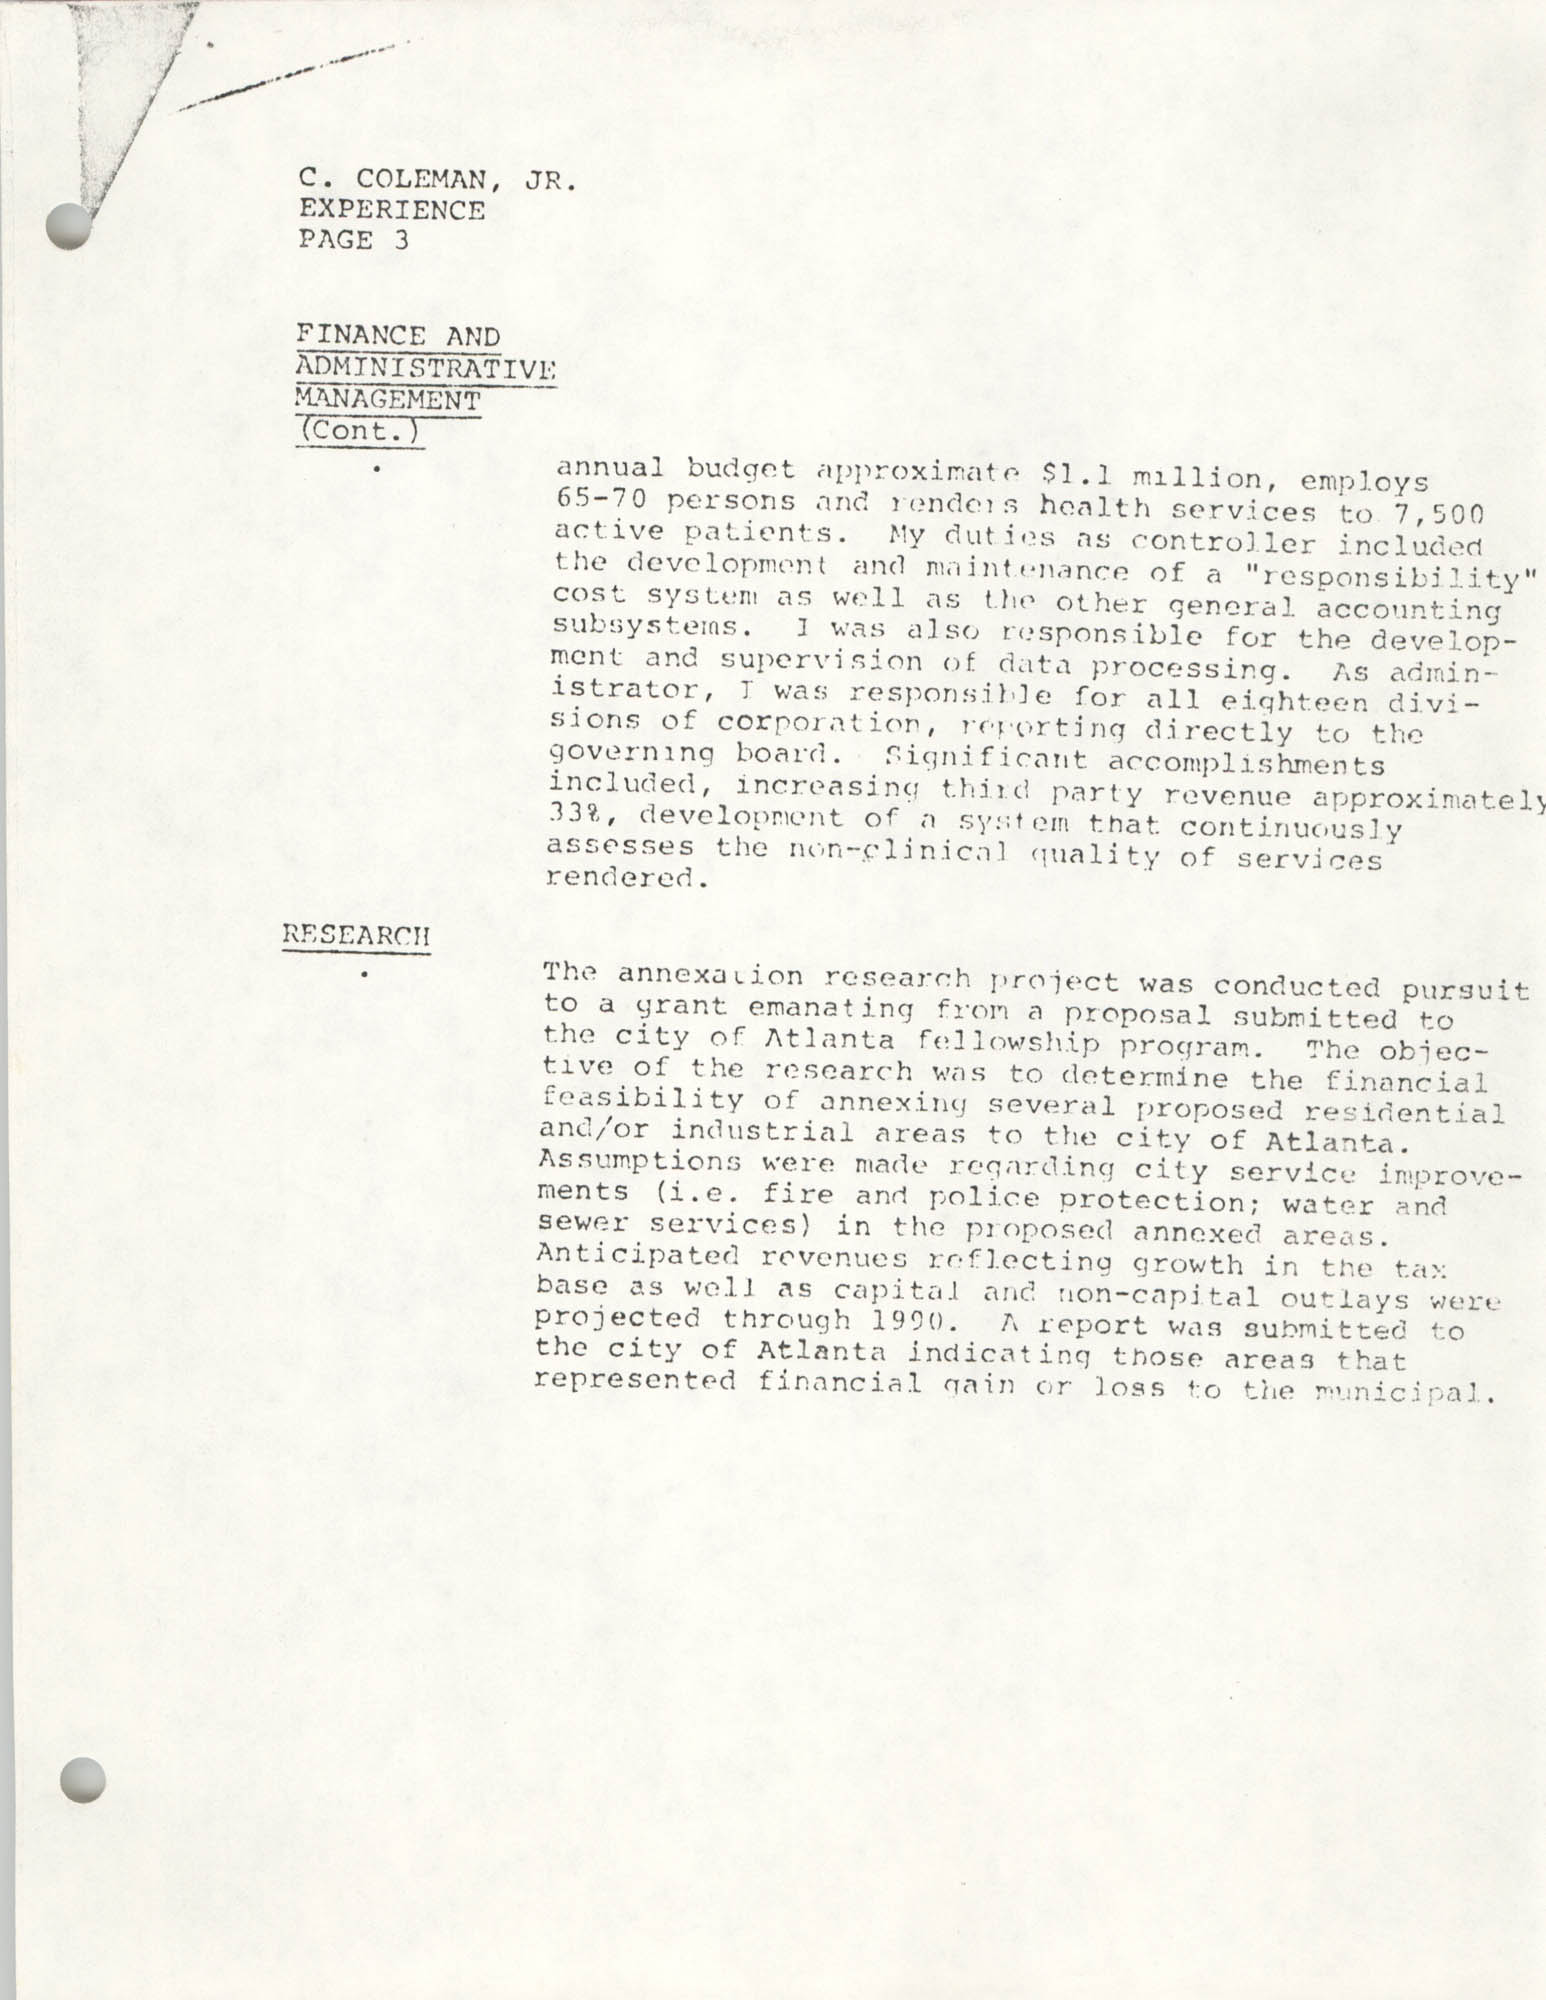 COBRA Consultant Resumes, Clarence Coleman, Jr., Page 3